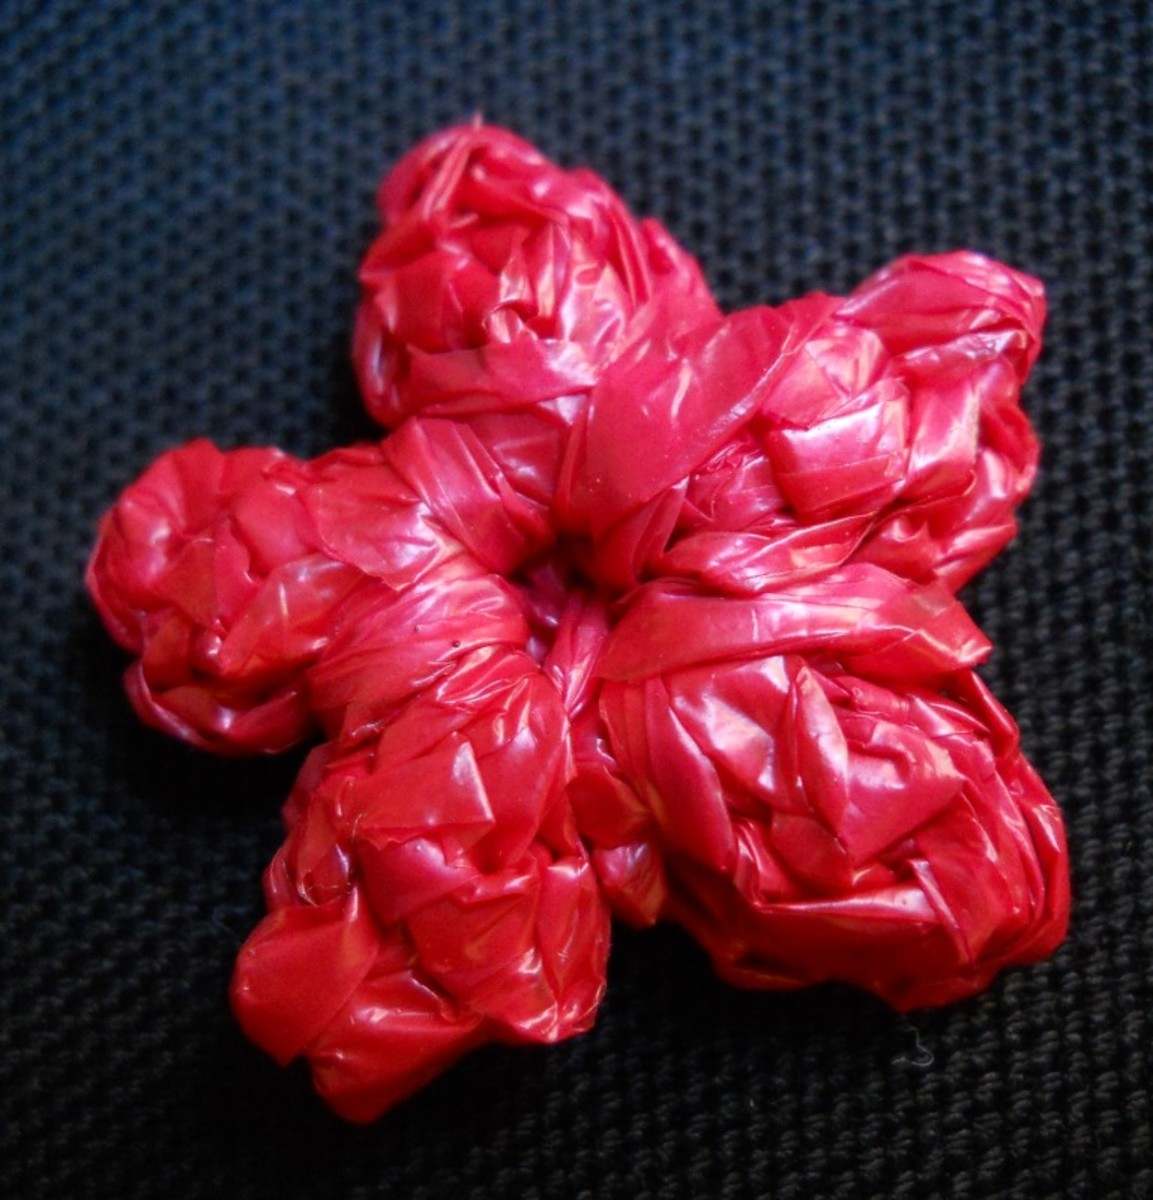 Photo #6: 2D CLUSTER Flower Back View